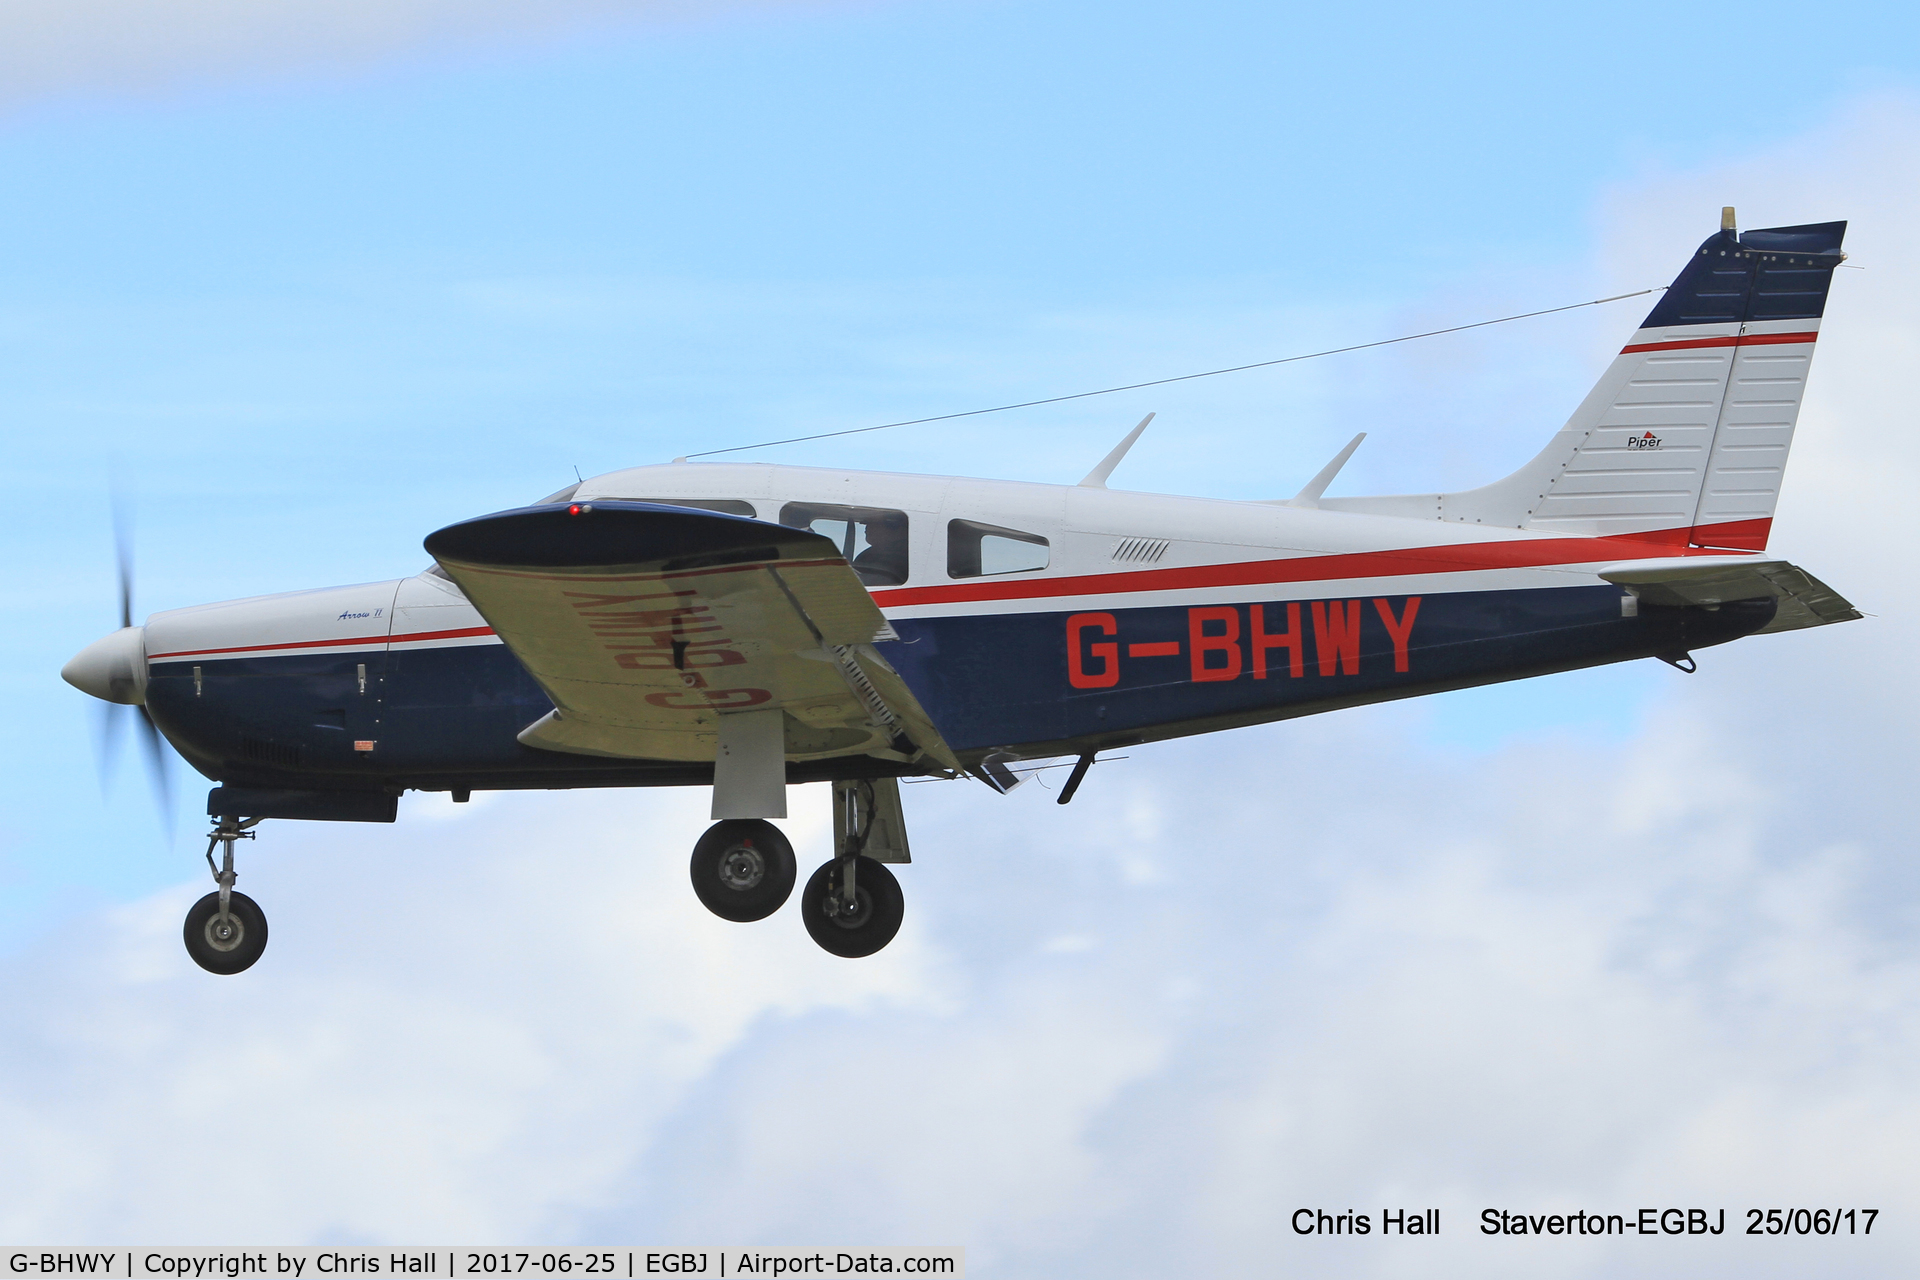 G-BHWY, 1973 Piper PA-28R-200-2 Cherokee Arrow II C/N 28R-7435059, Project Propeller at Staverton